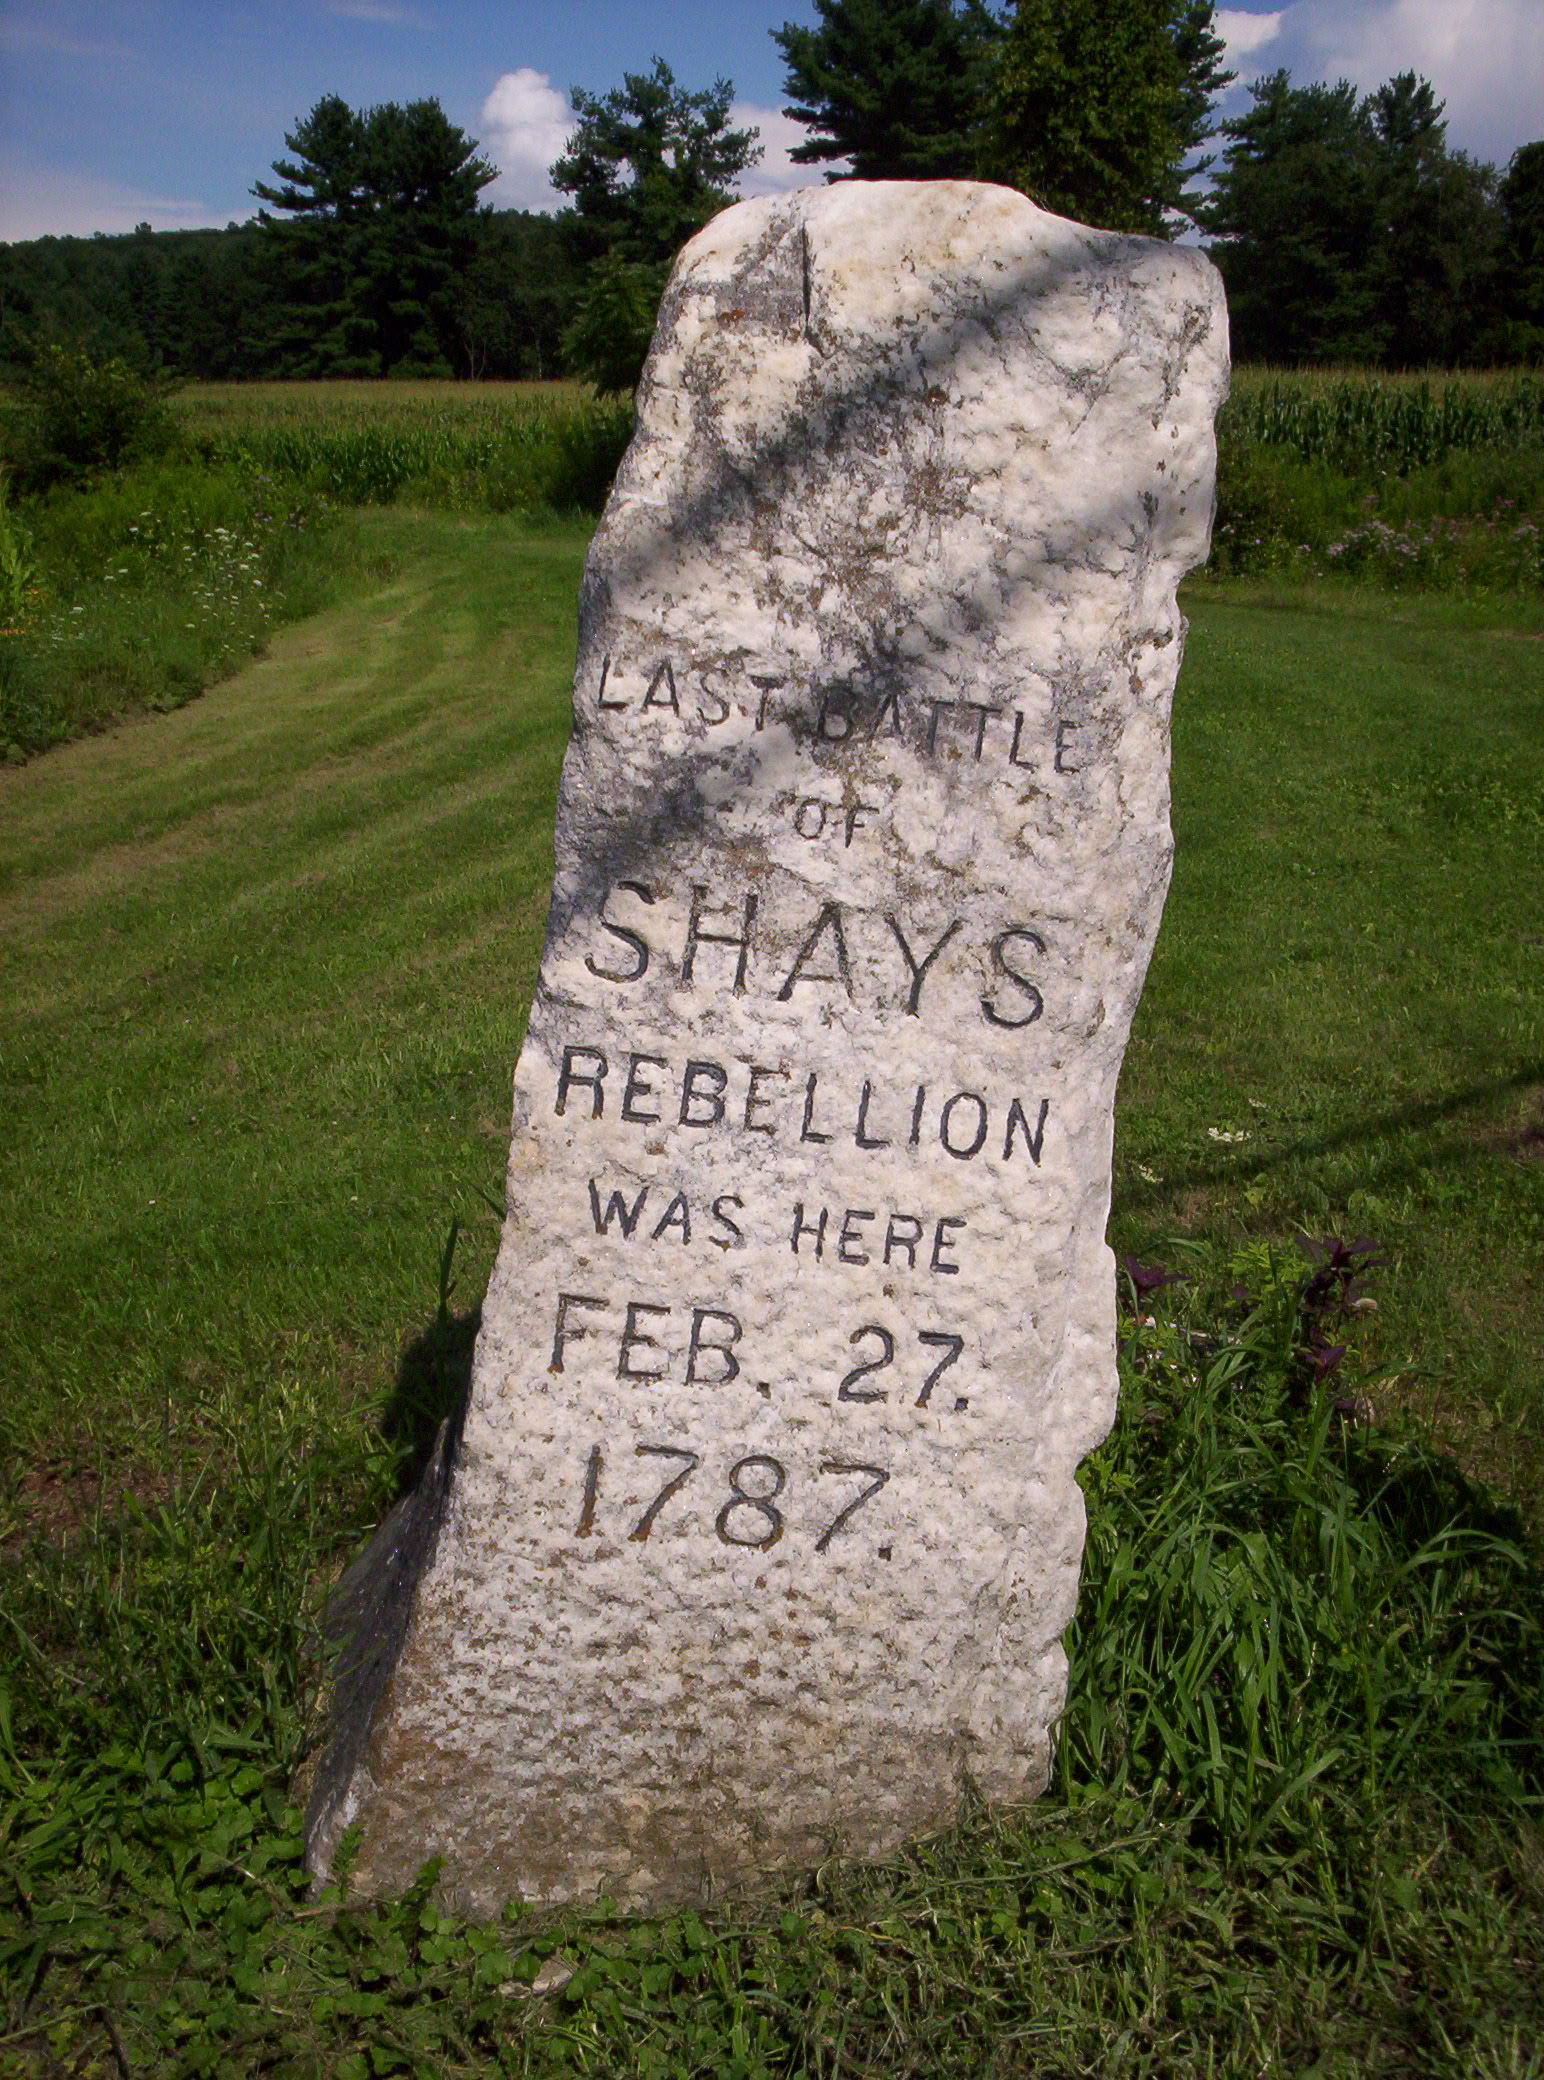 Shay's Rebellion exemplified the many problems with the Articles of Confederation